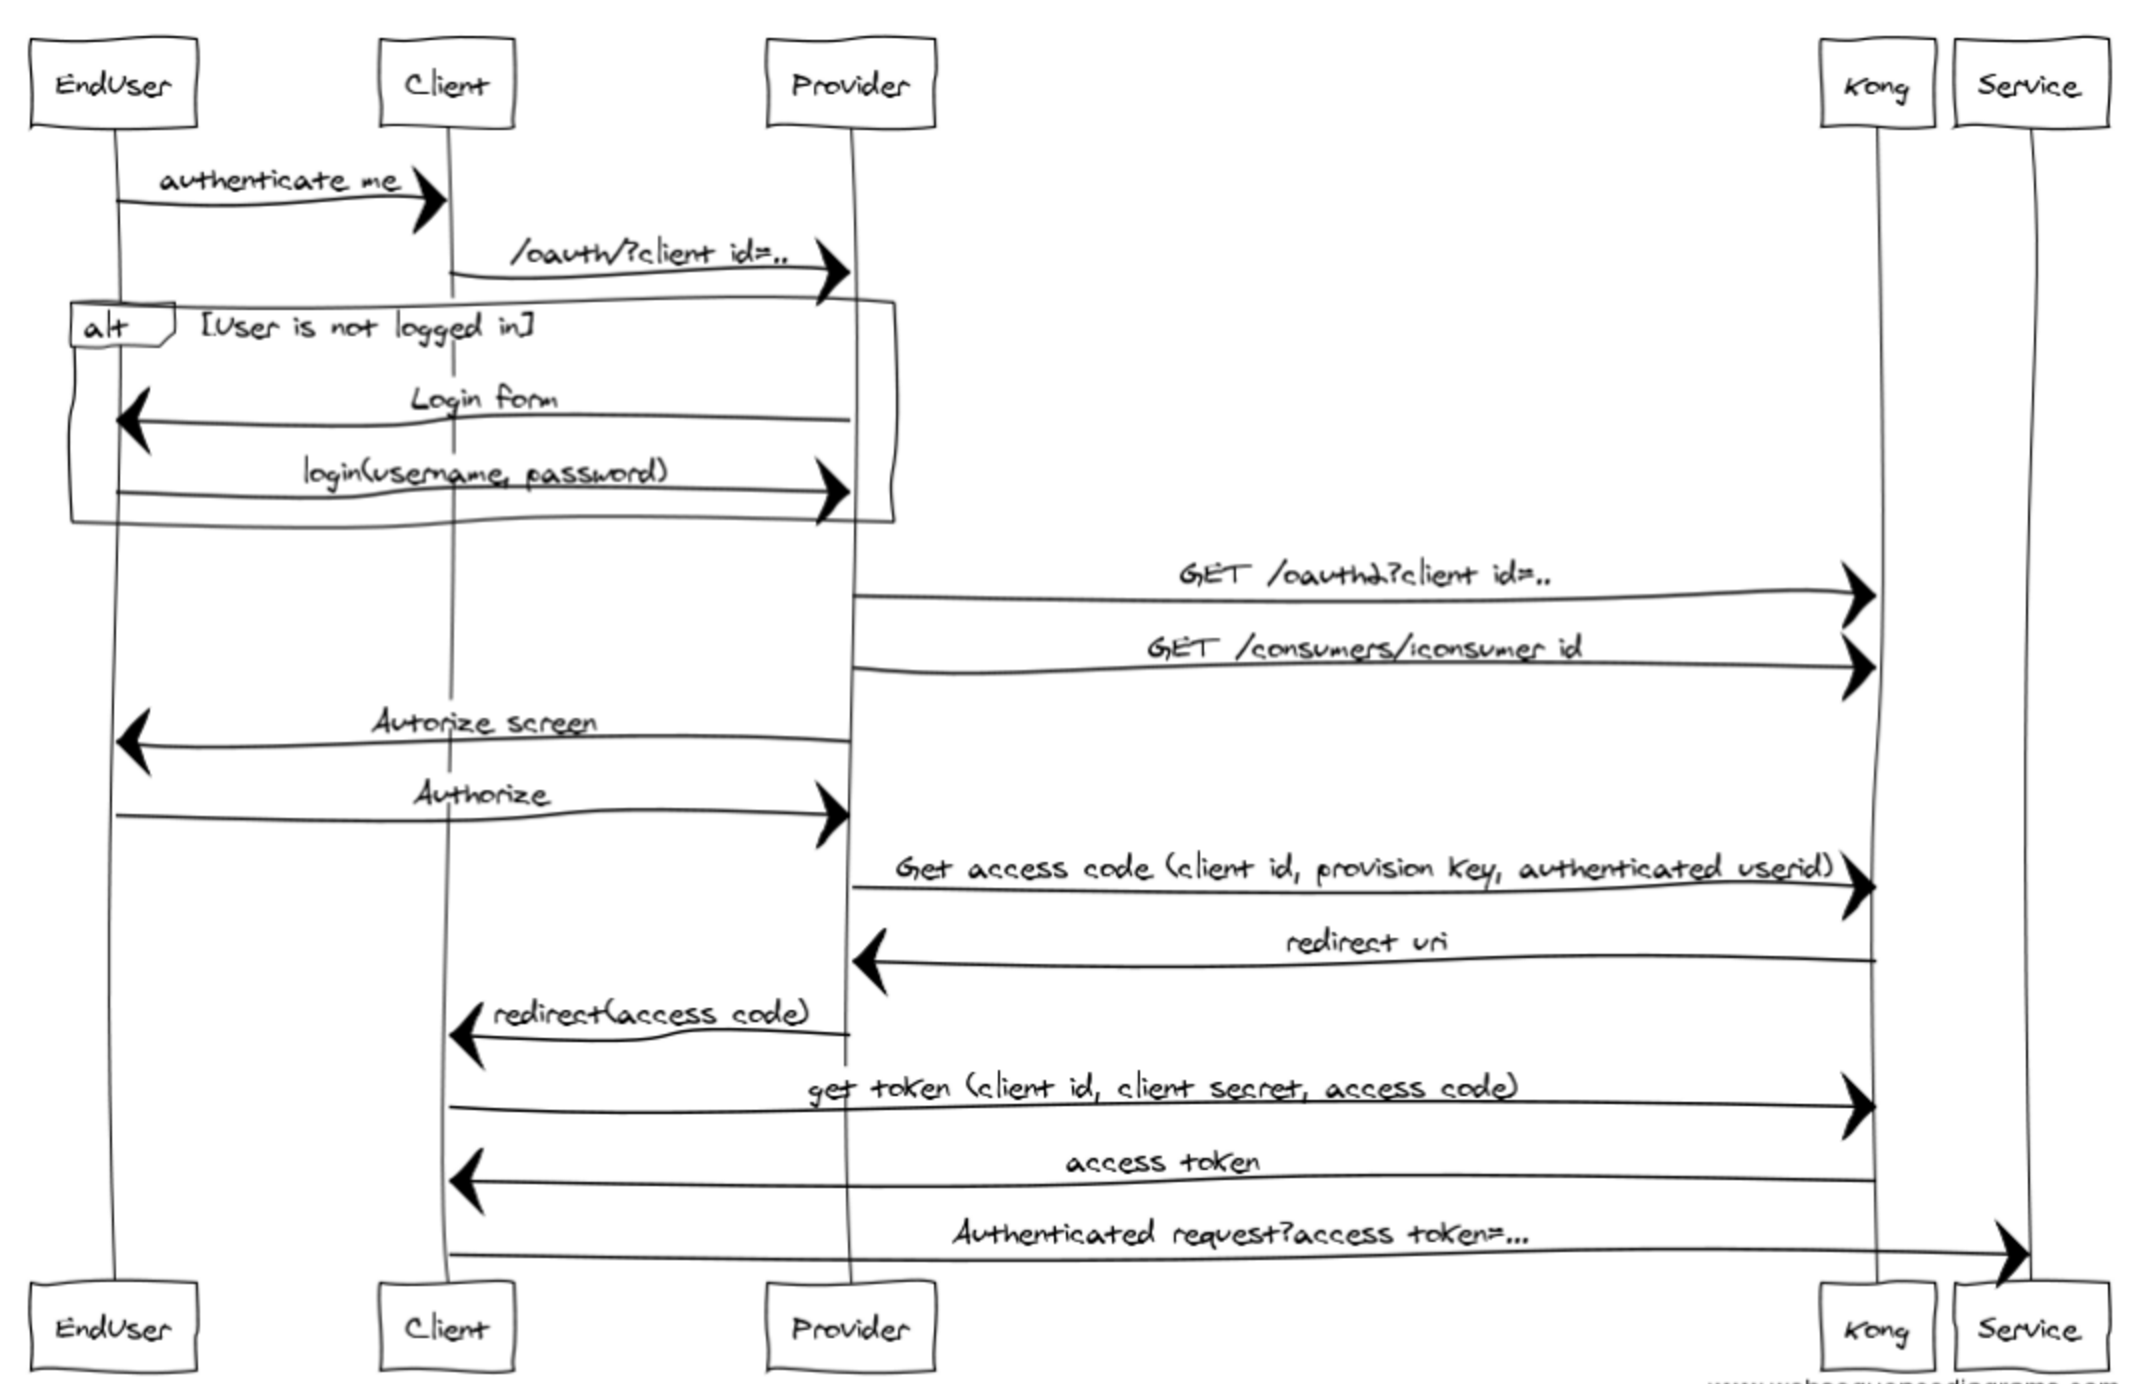 oauth process